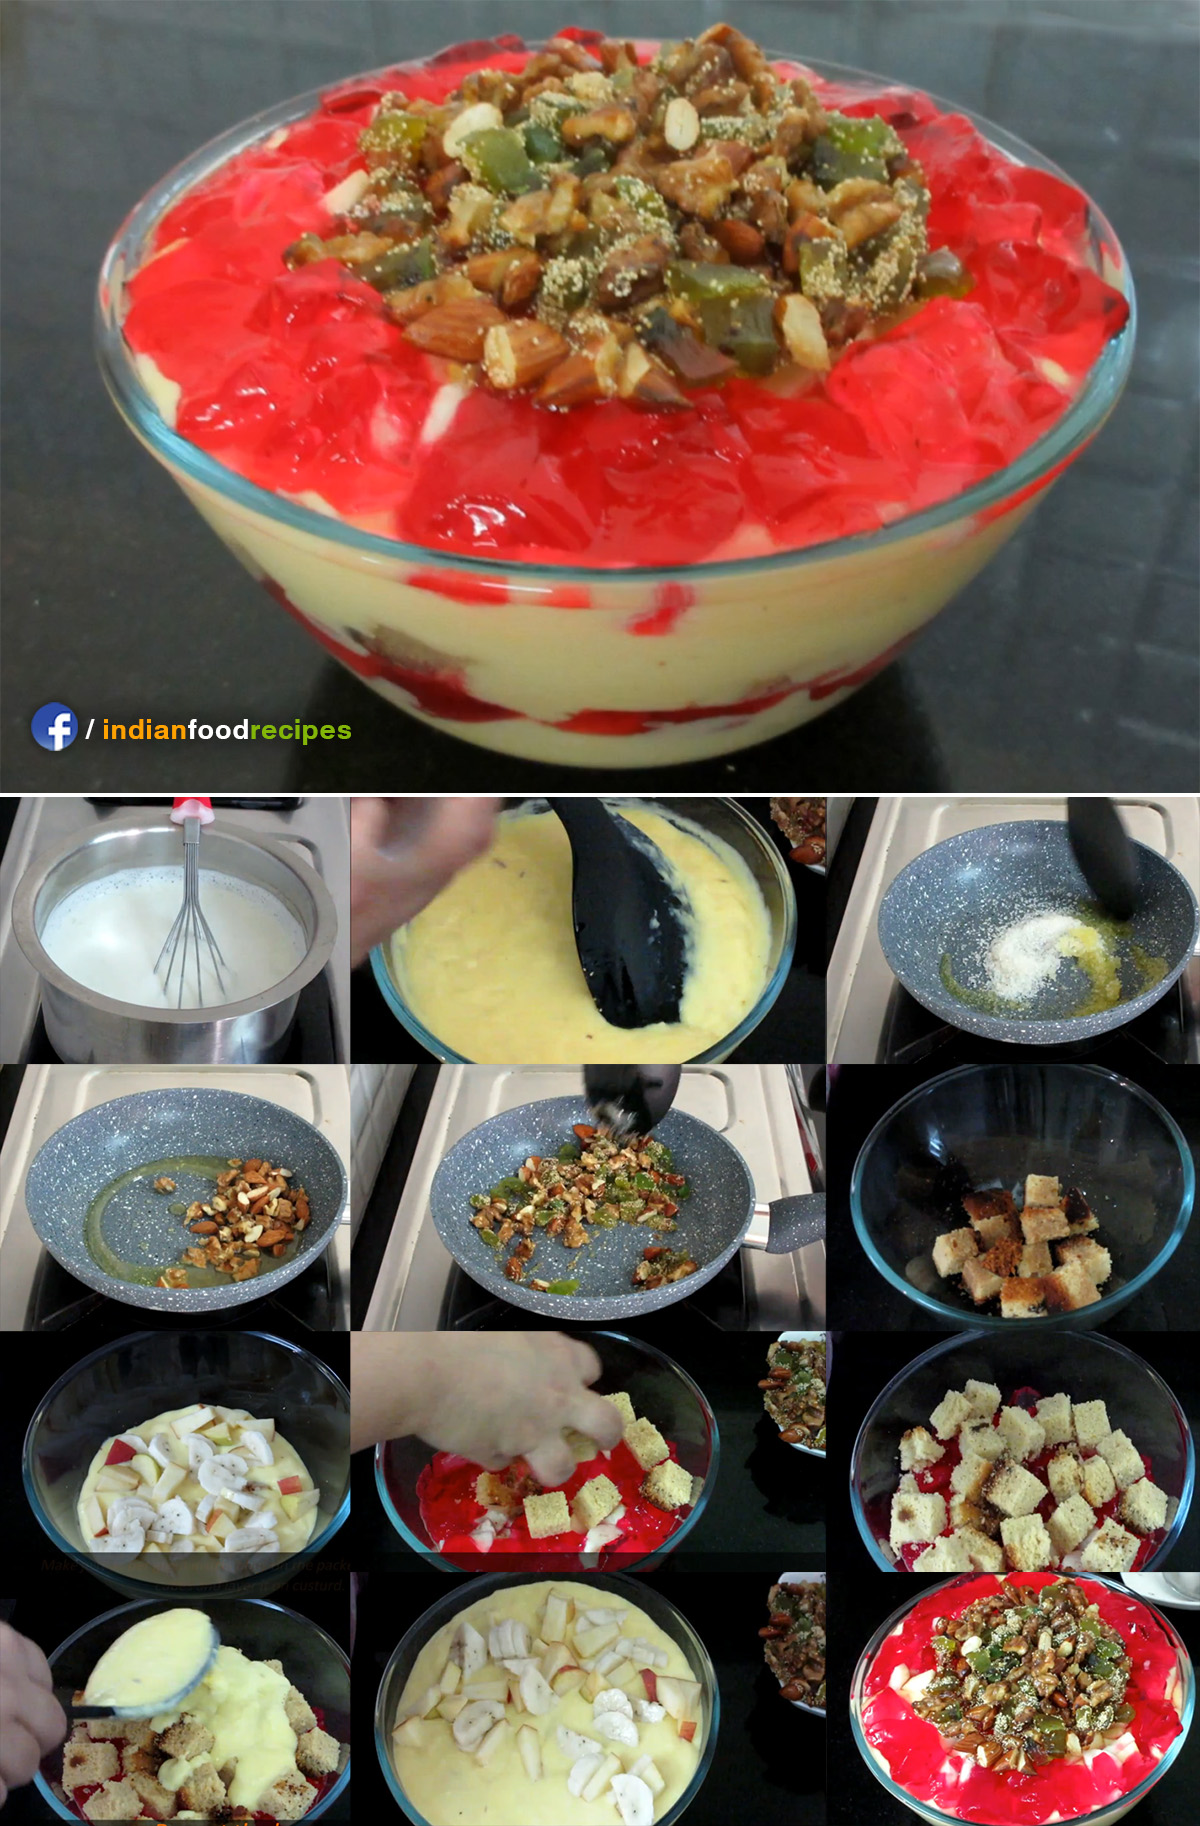 Trifle Pudding recipe step by step